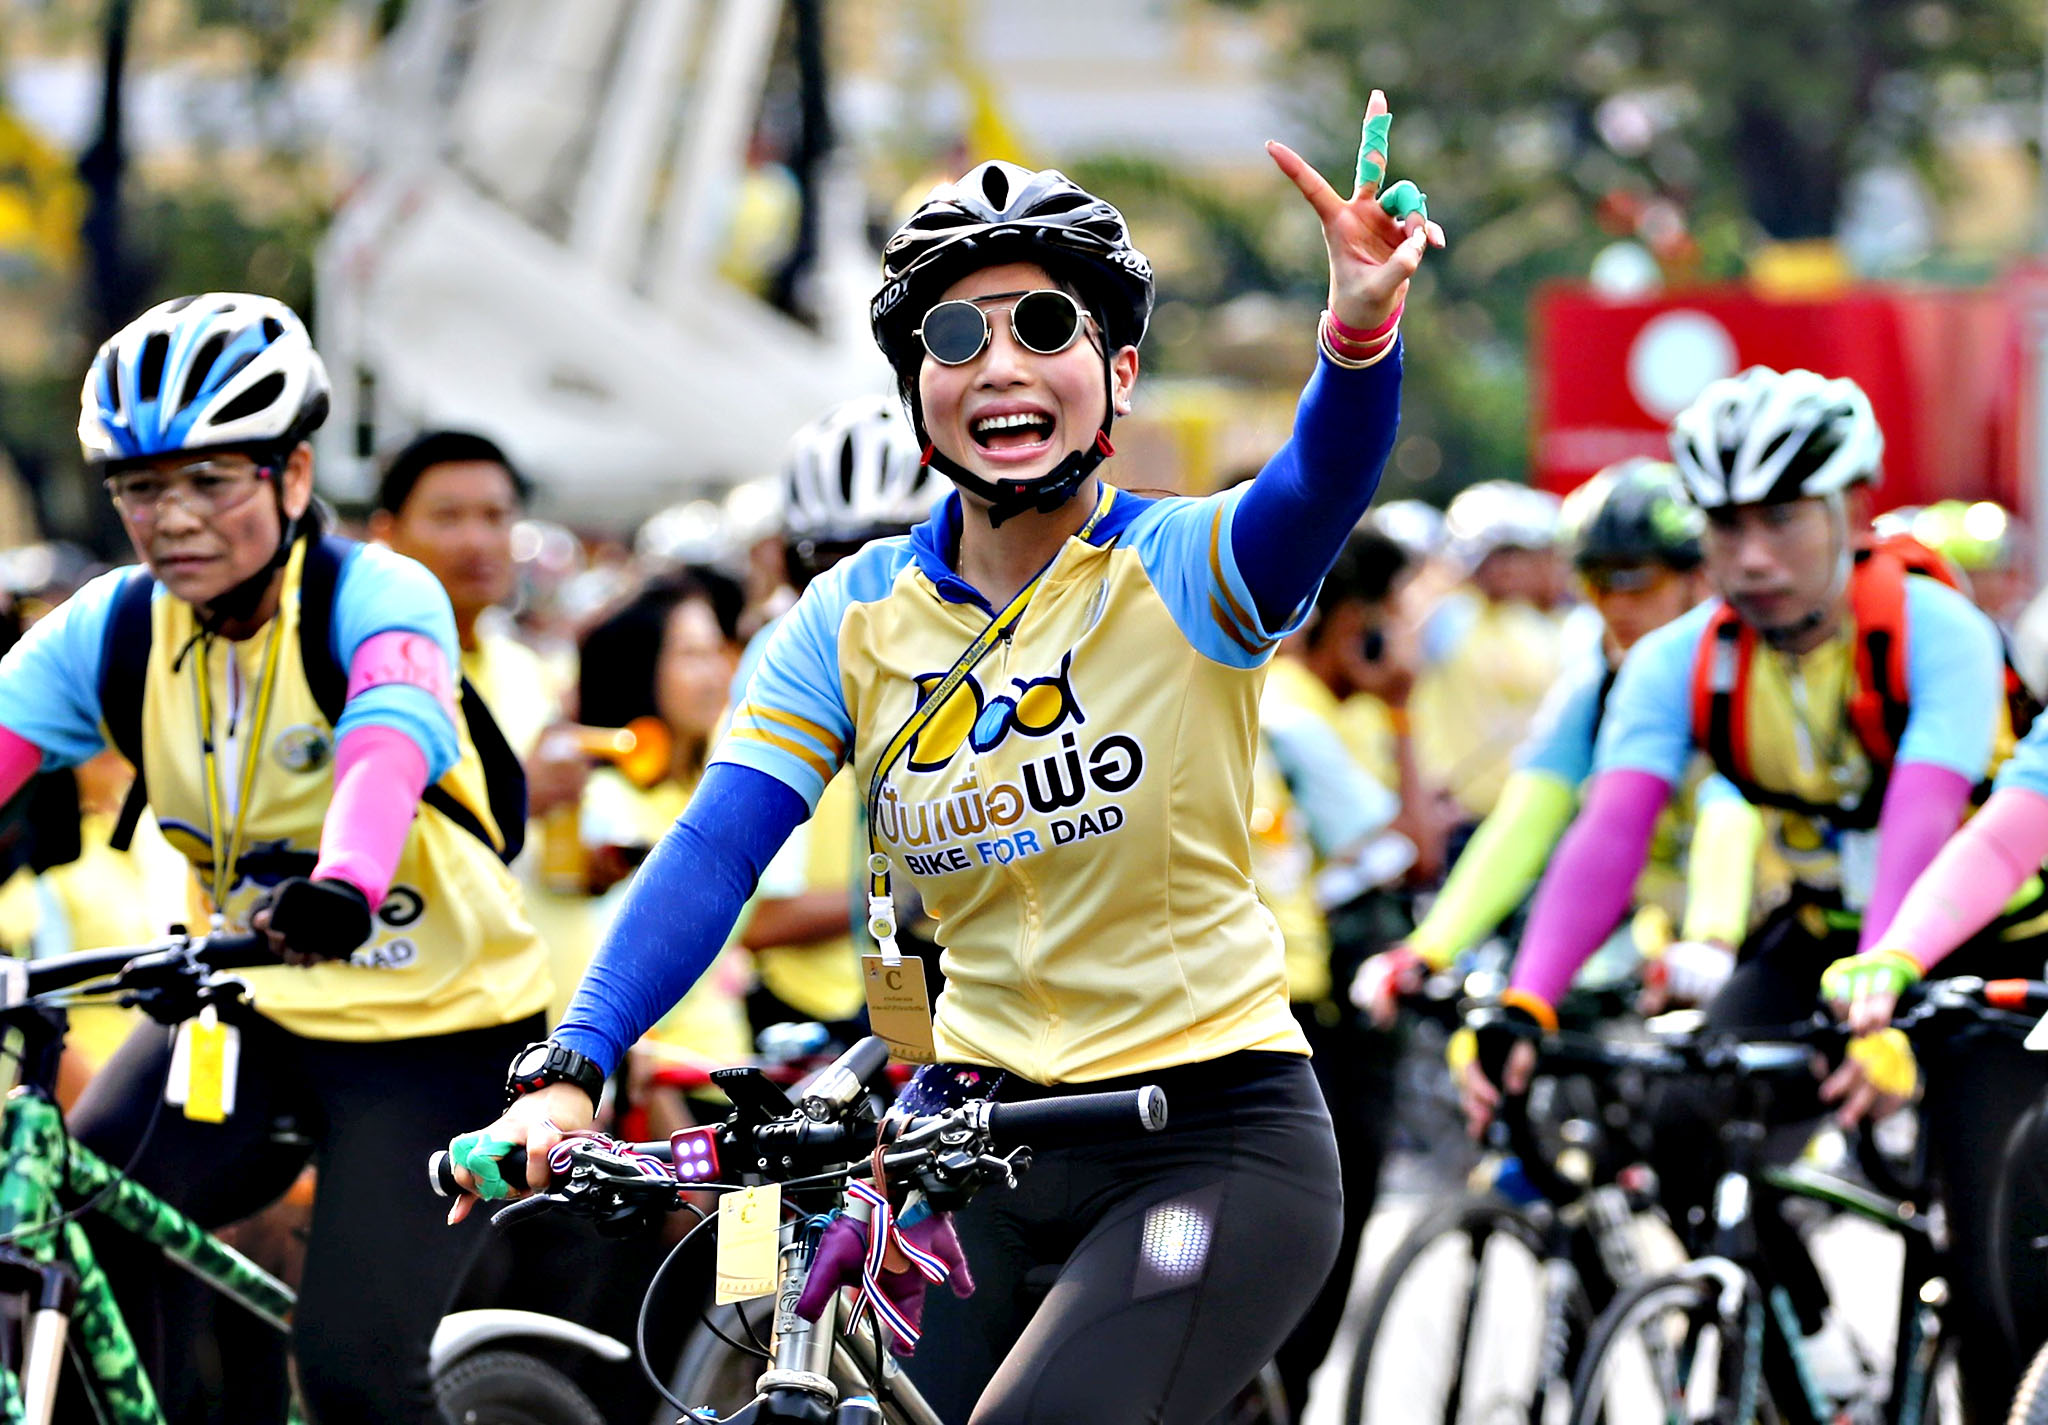 "Thailand's Princess Sirivannavari Nariratana waves to crowd as she cycles in the ""Bike for Dad"" event in Bangkok, Thailand, December 11, 2015. Thai Crown Prince Maha Vajiralongkorn led thousand of cyclists on a 29-km course in Bangkok to celebrate King Bhumibol Adulyadej's 88th birthday which fell on December 5."